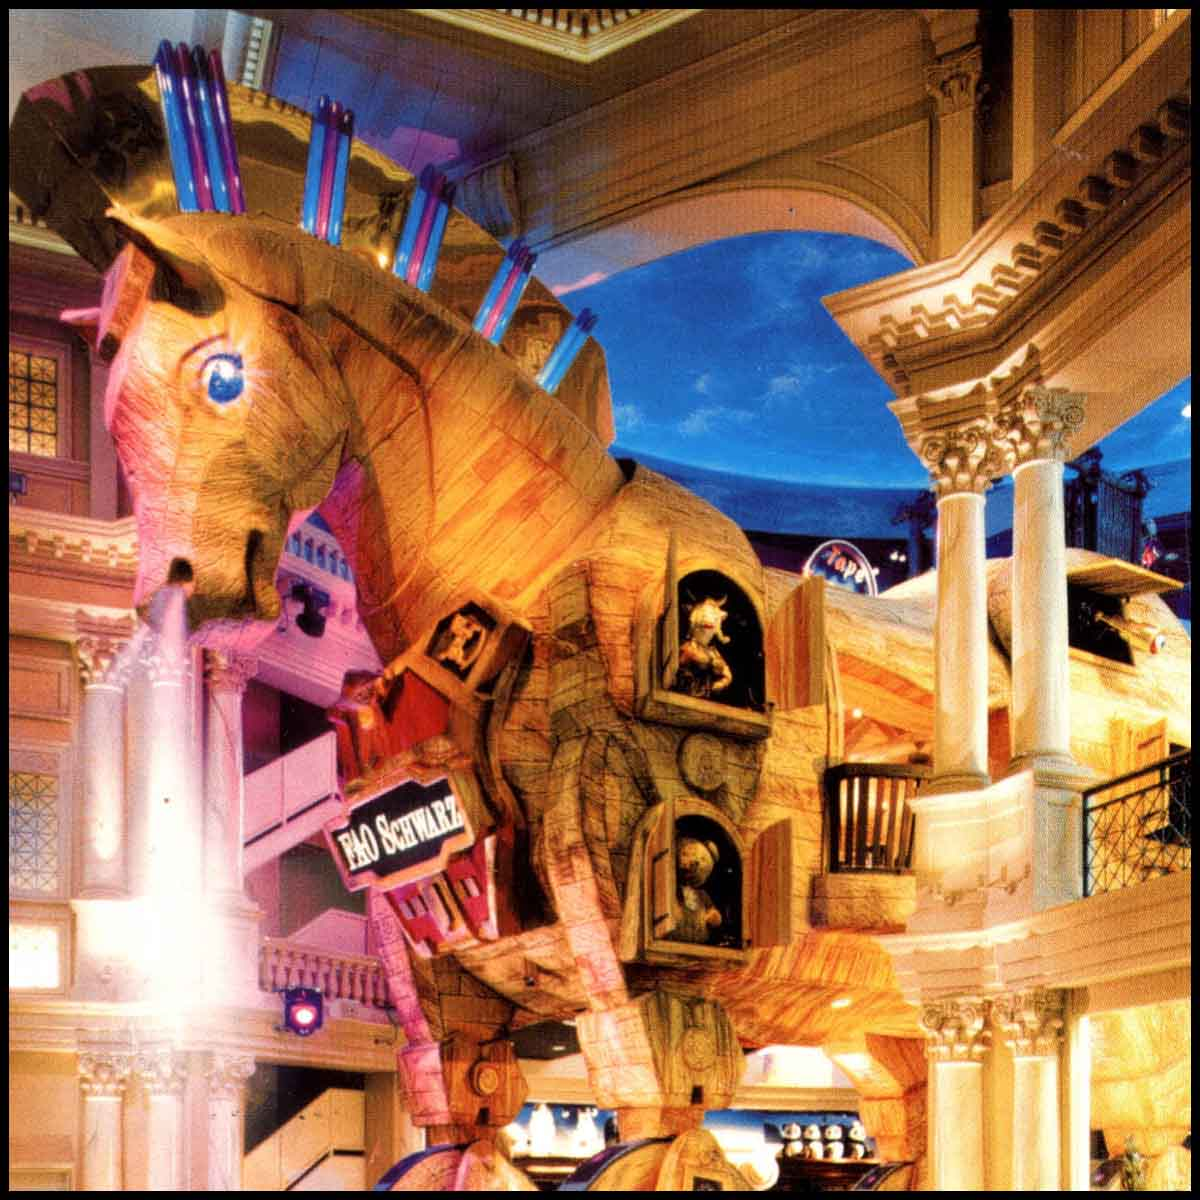 photo of large Trojan Horse sculpture with toys in windows and doors, serving as a store, inside Caesars Palace